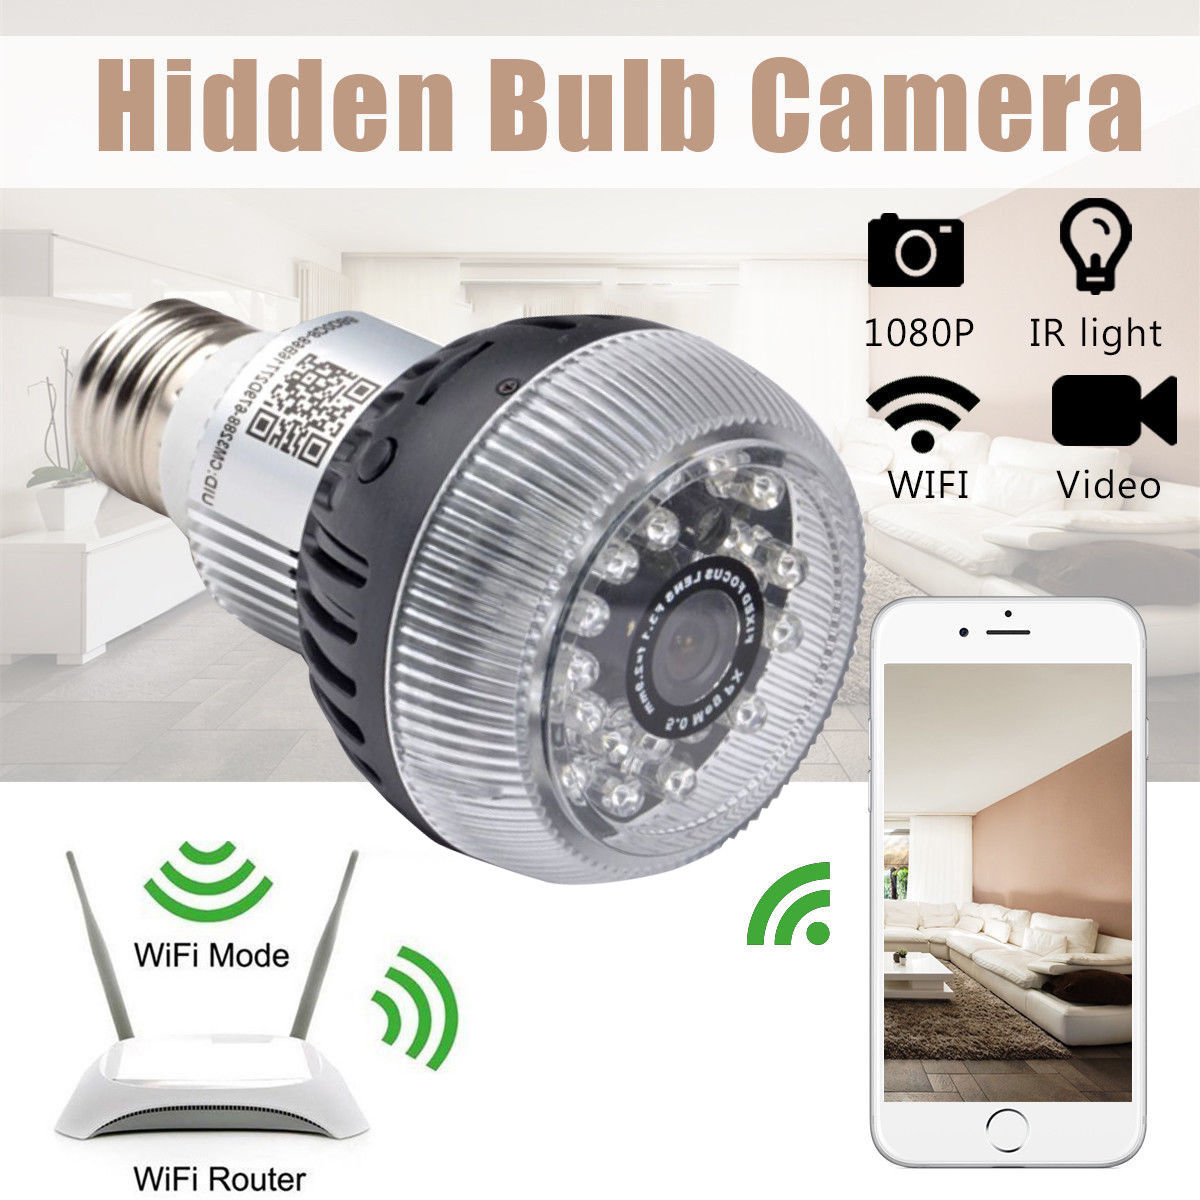 Motion detecting wifi connected light bulb cameras a bulb security camera hd 960p network dvr wifi ip motion detector e27 led light this one has linux 2 way communication explicitly mentions separate ir mozeypictures Gallery